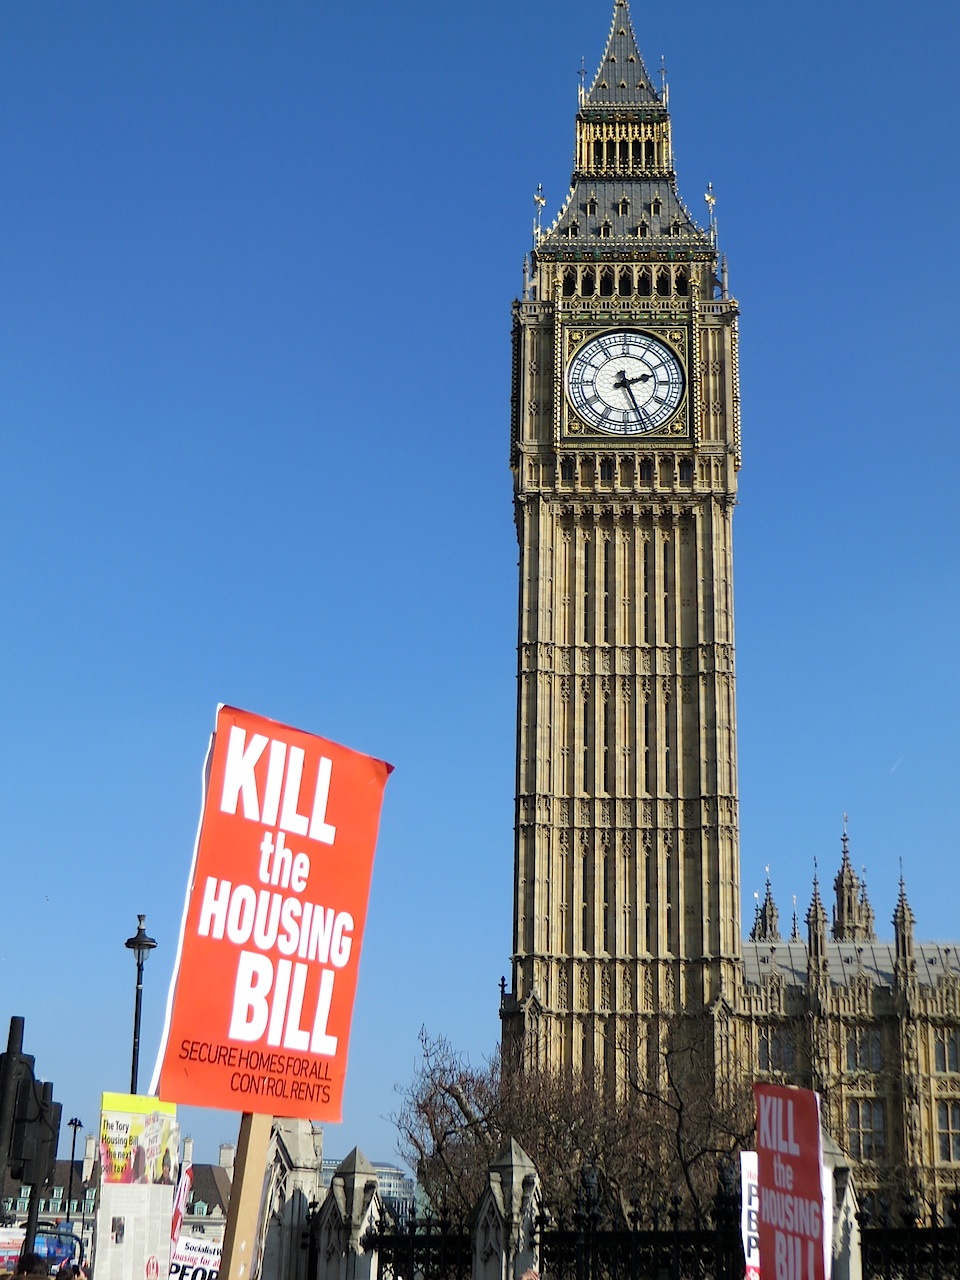 Kill the Housing Bill: a poster by Big Ben during the march against the Tories' wretched new Housing Bill on March 13, 2016 (Photo: Andy Worthington).